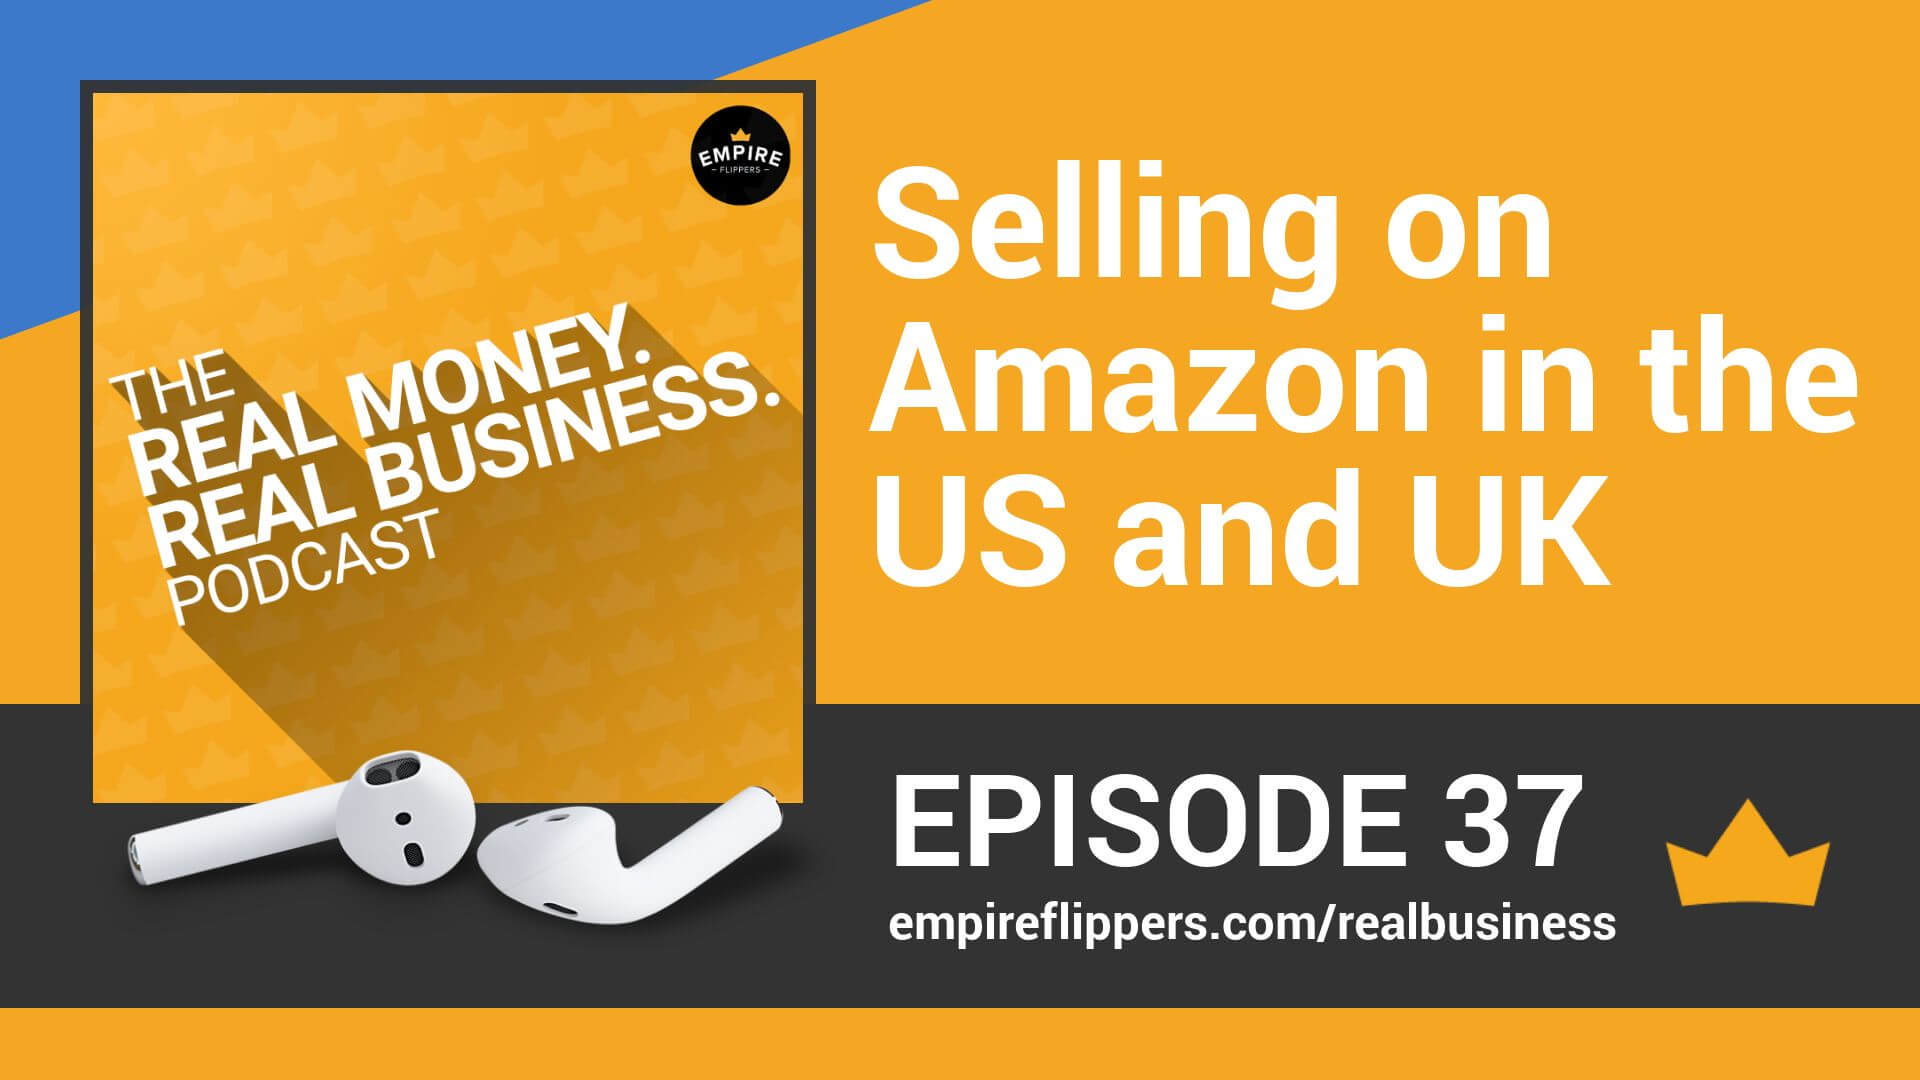 RMRB 37: Selling on Amazon in the US and UK